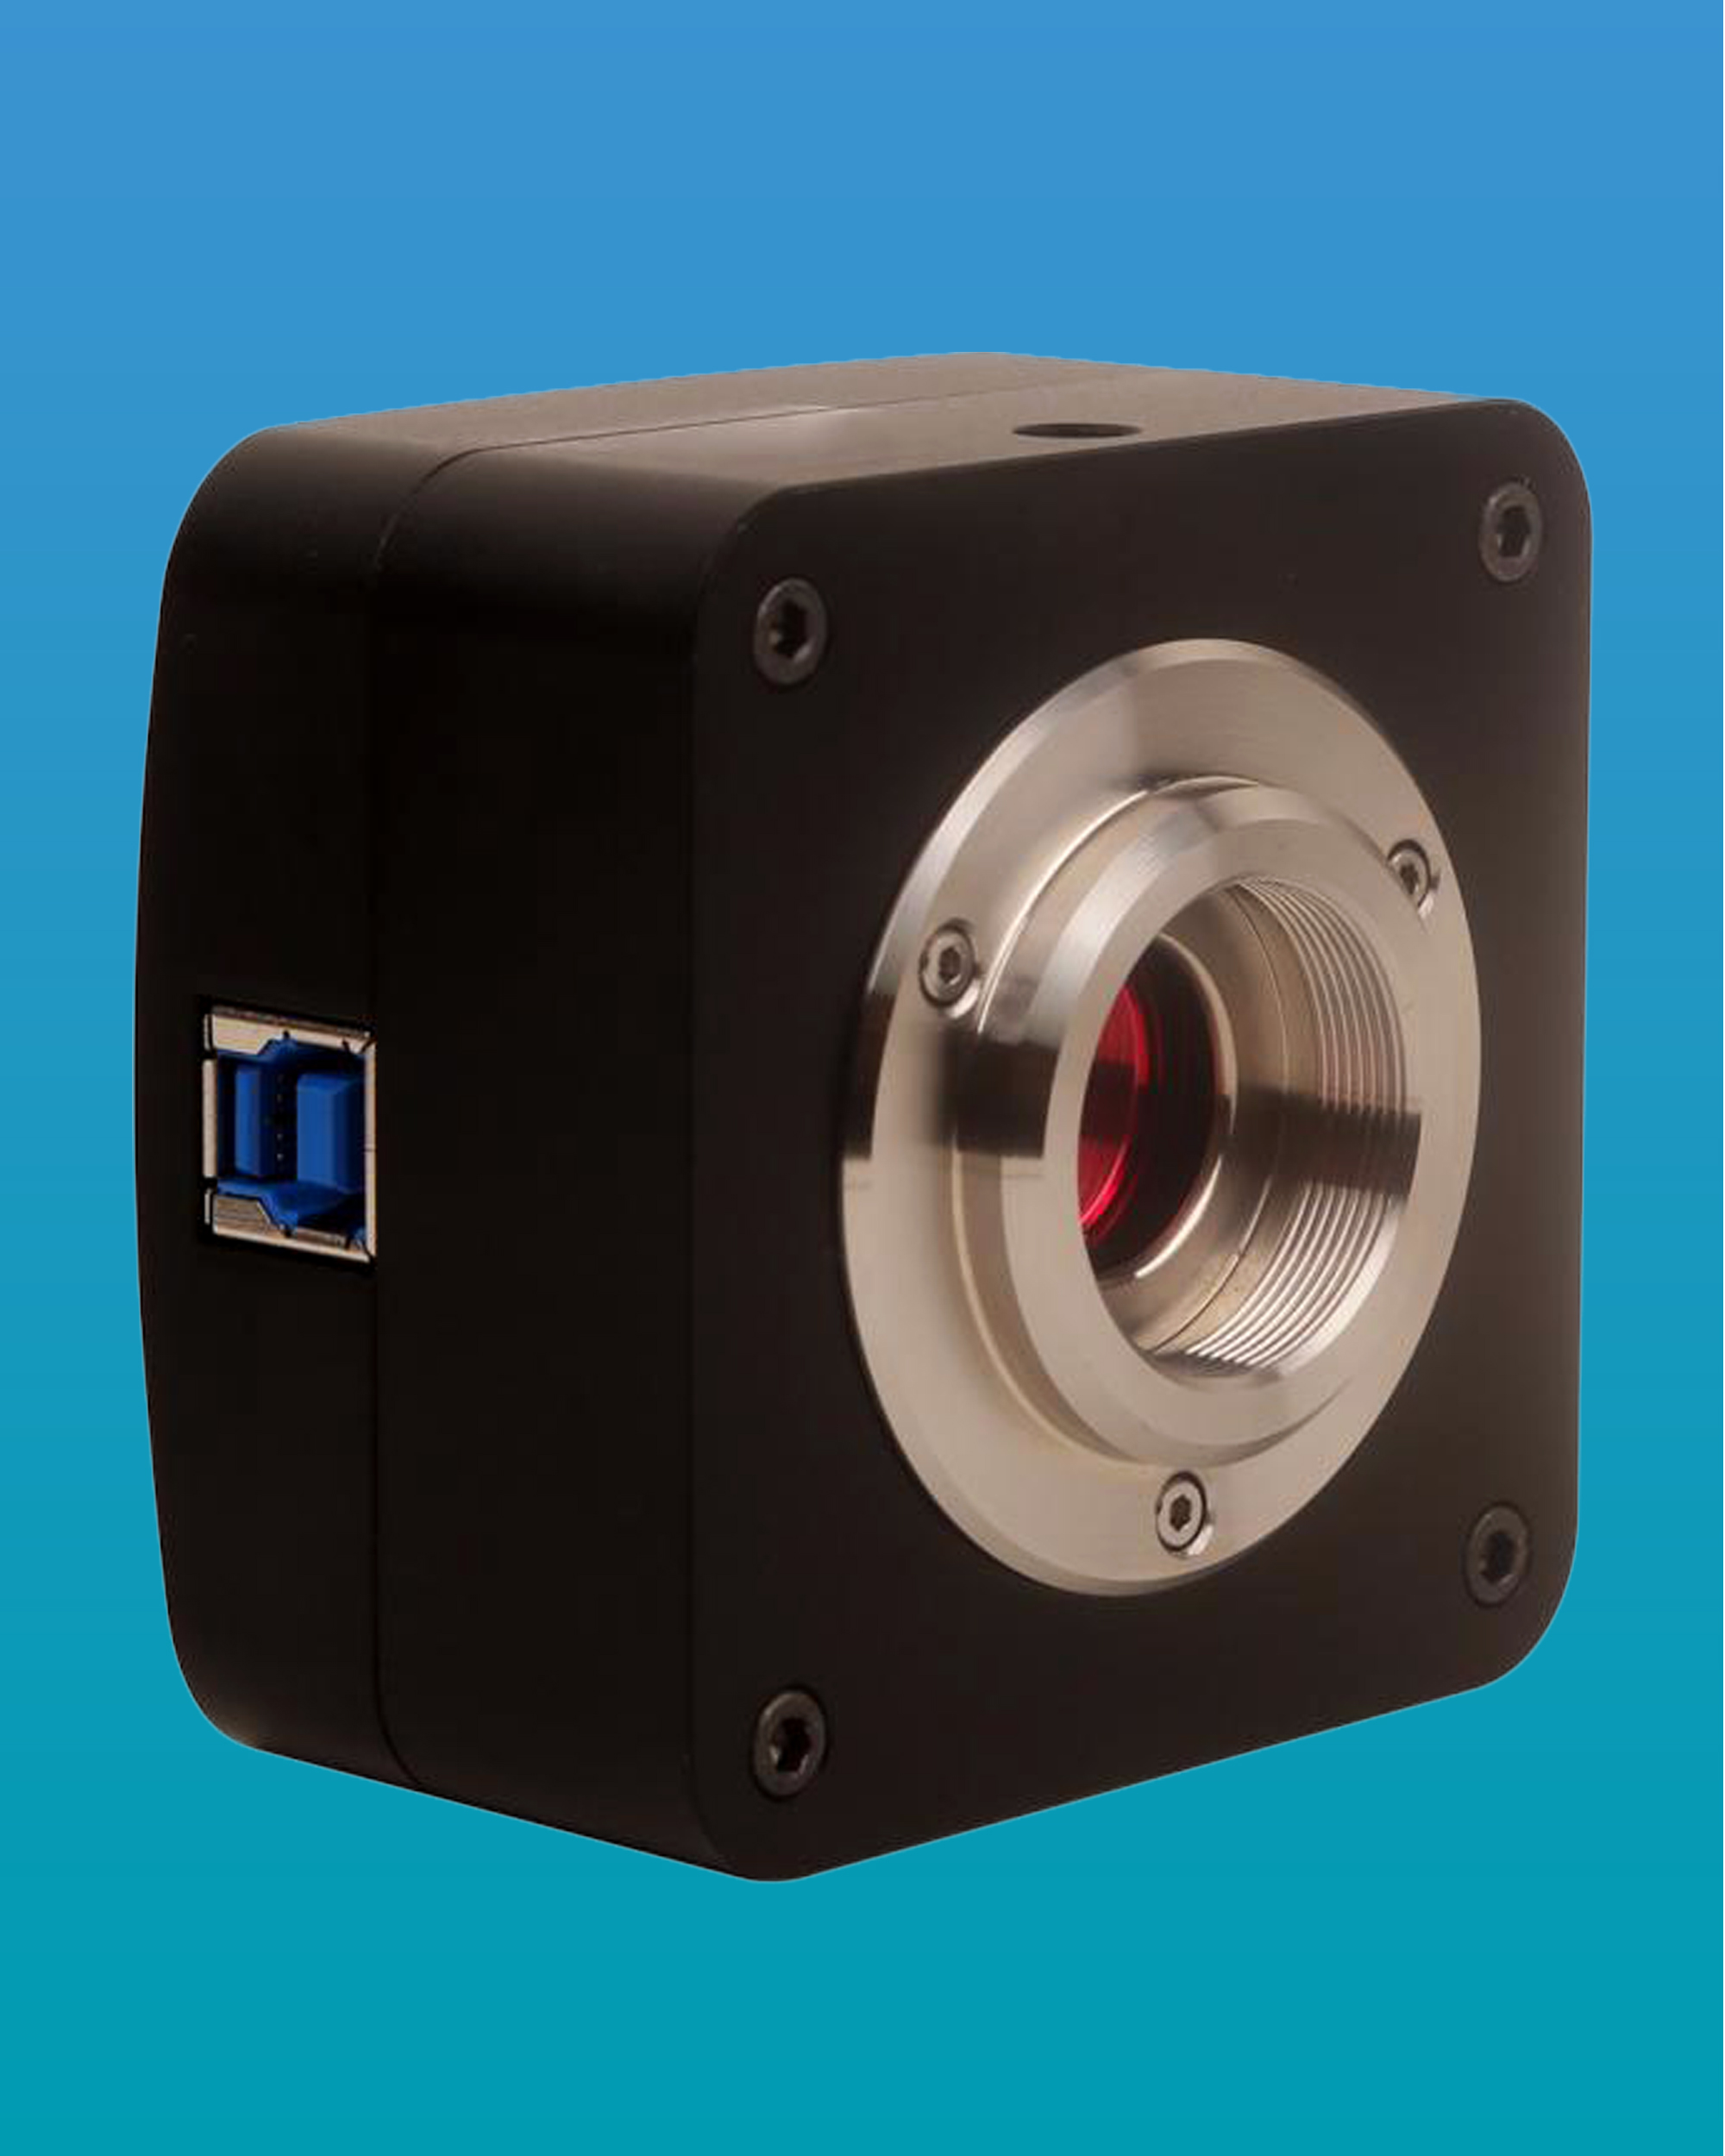 [LC-32] C-mount USB3.0 CMOS Camera for Bright Field, Dark Field, Fluorescent Light Environment and Normal Microscope